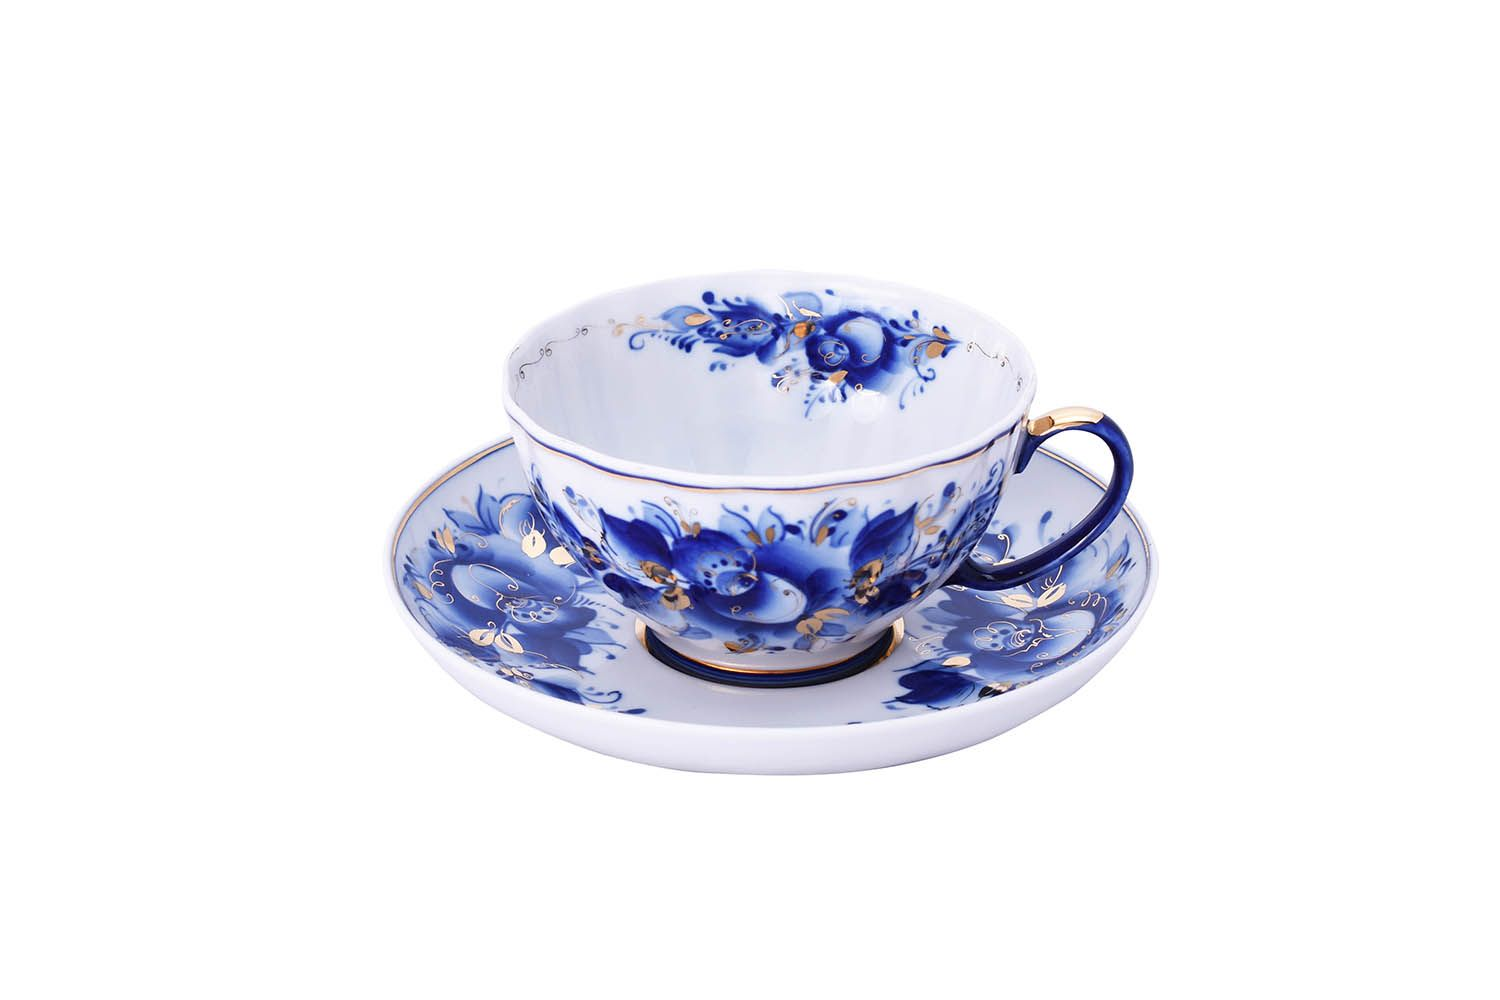 Dulevo porcelain / Tea cup and saucer set, 12 pcs., 275 ml White Swan Rose Gold